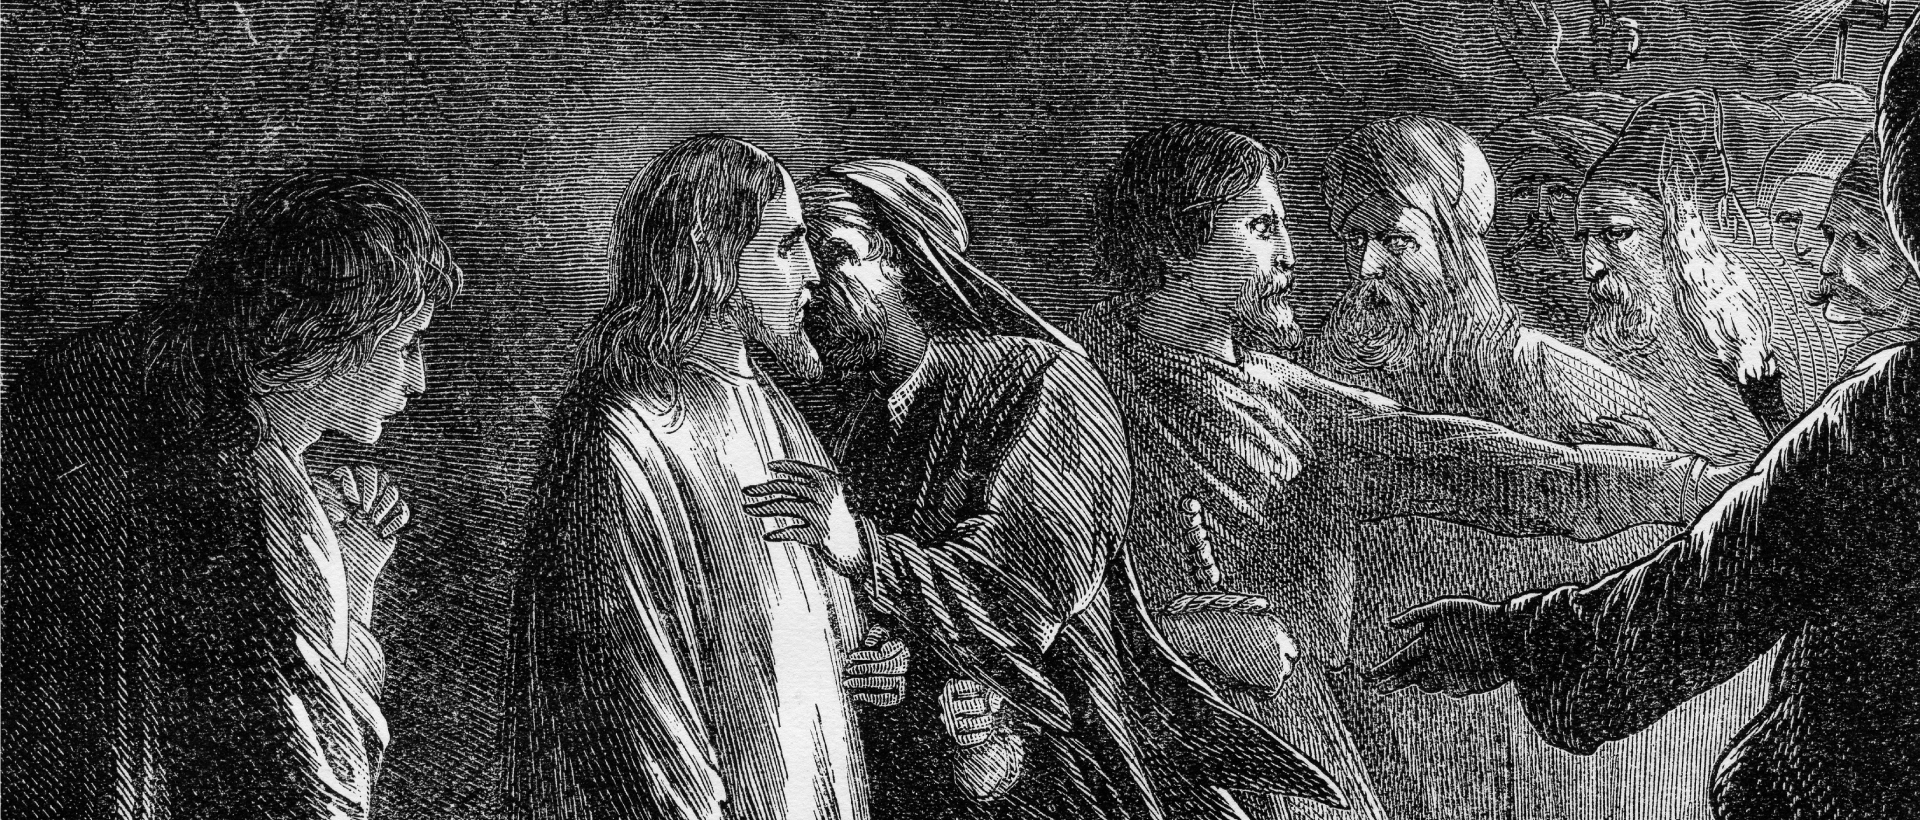 4 Things We Can Learn from Judas